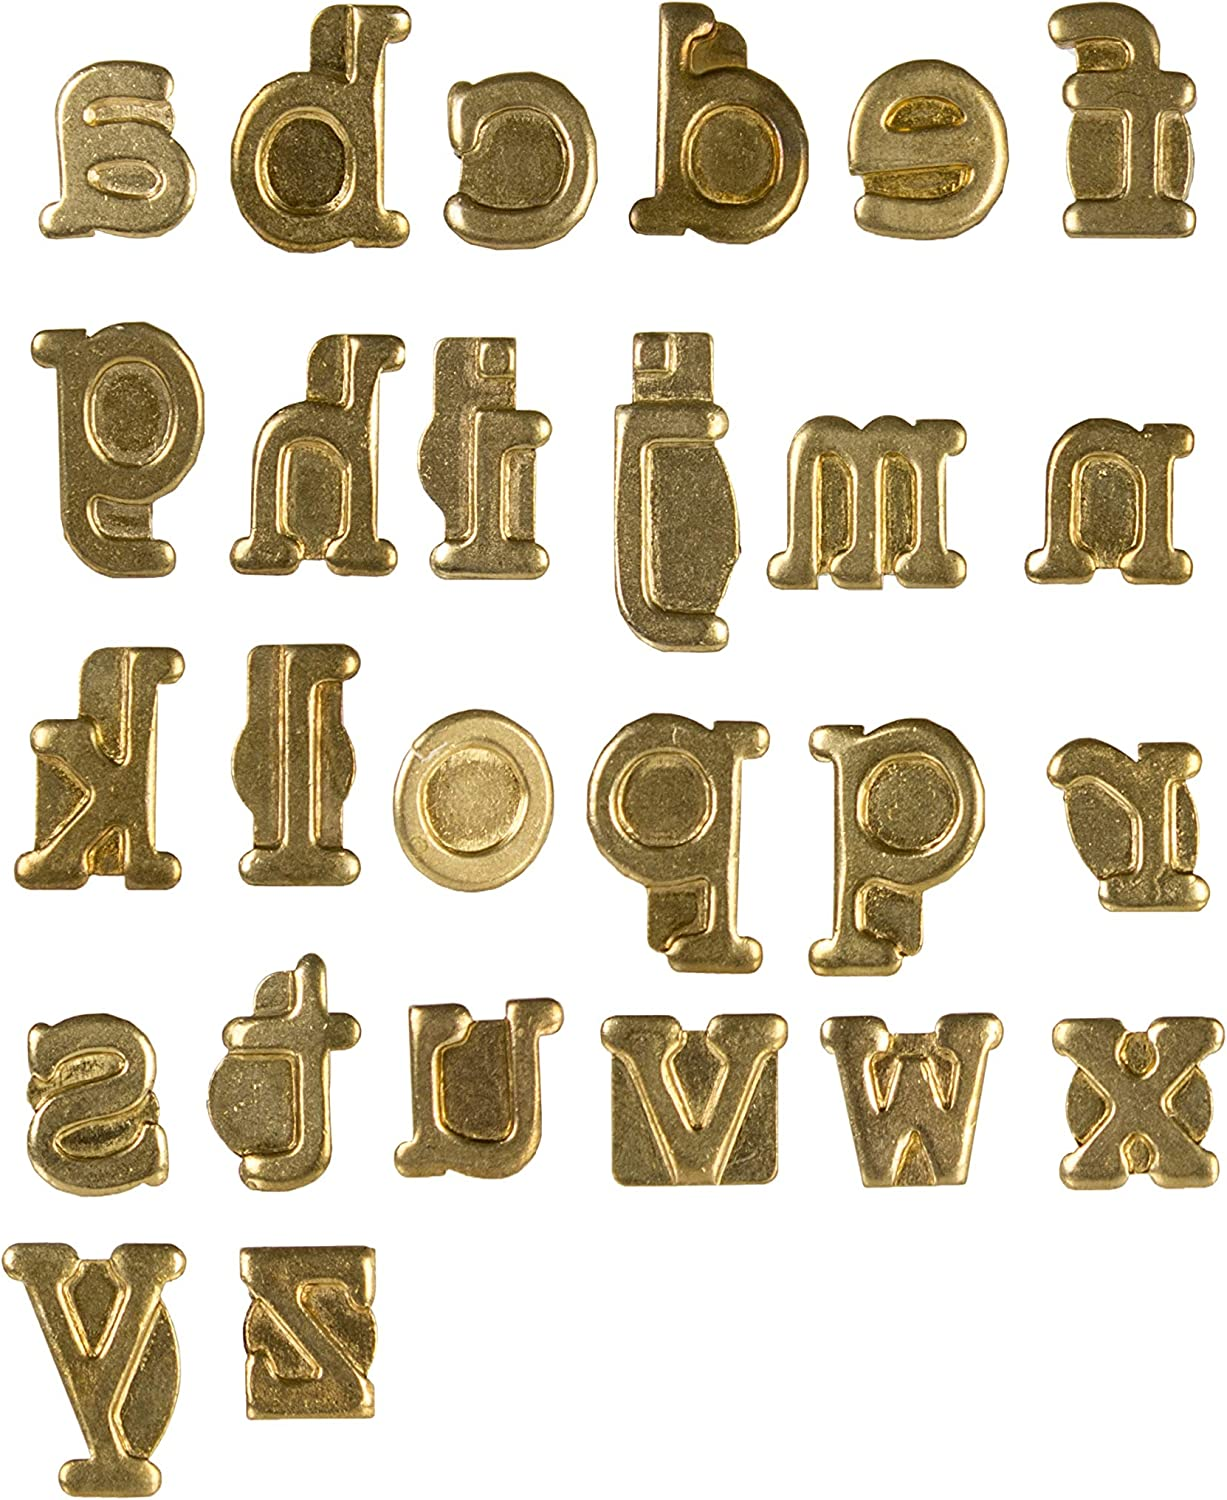 LOWERCASE New~Walnut Hollow HotStamps ALPHABET Branding /& Personalization SET